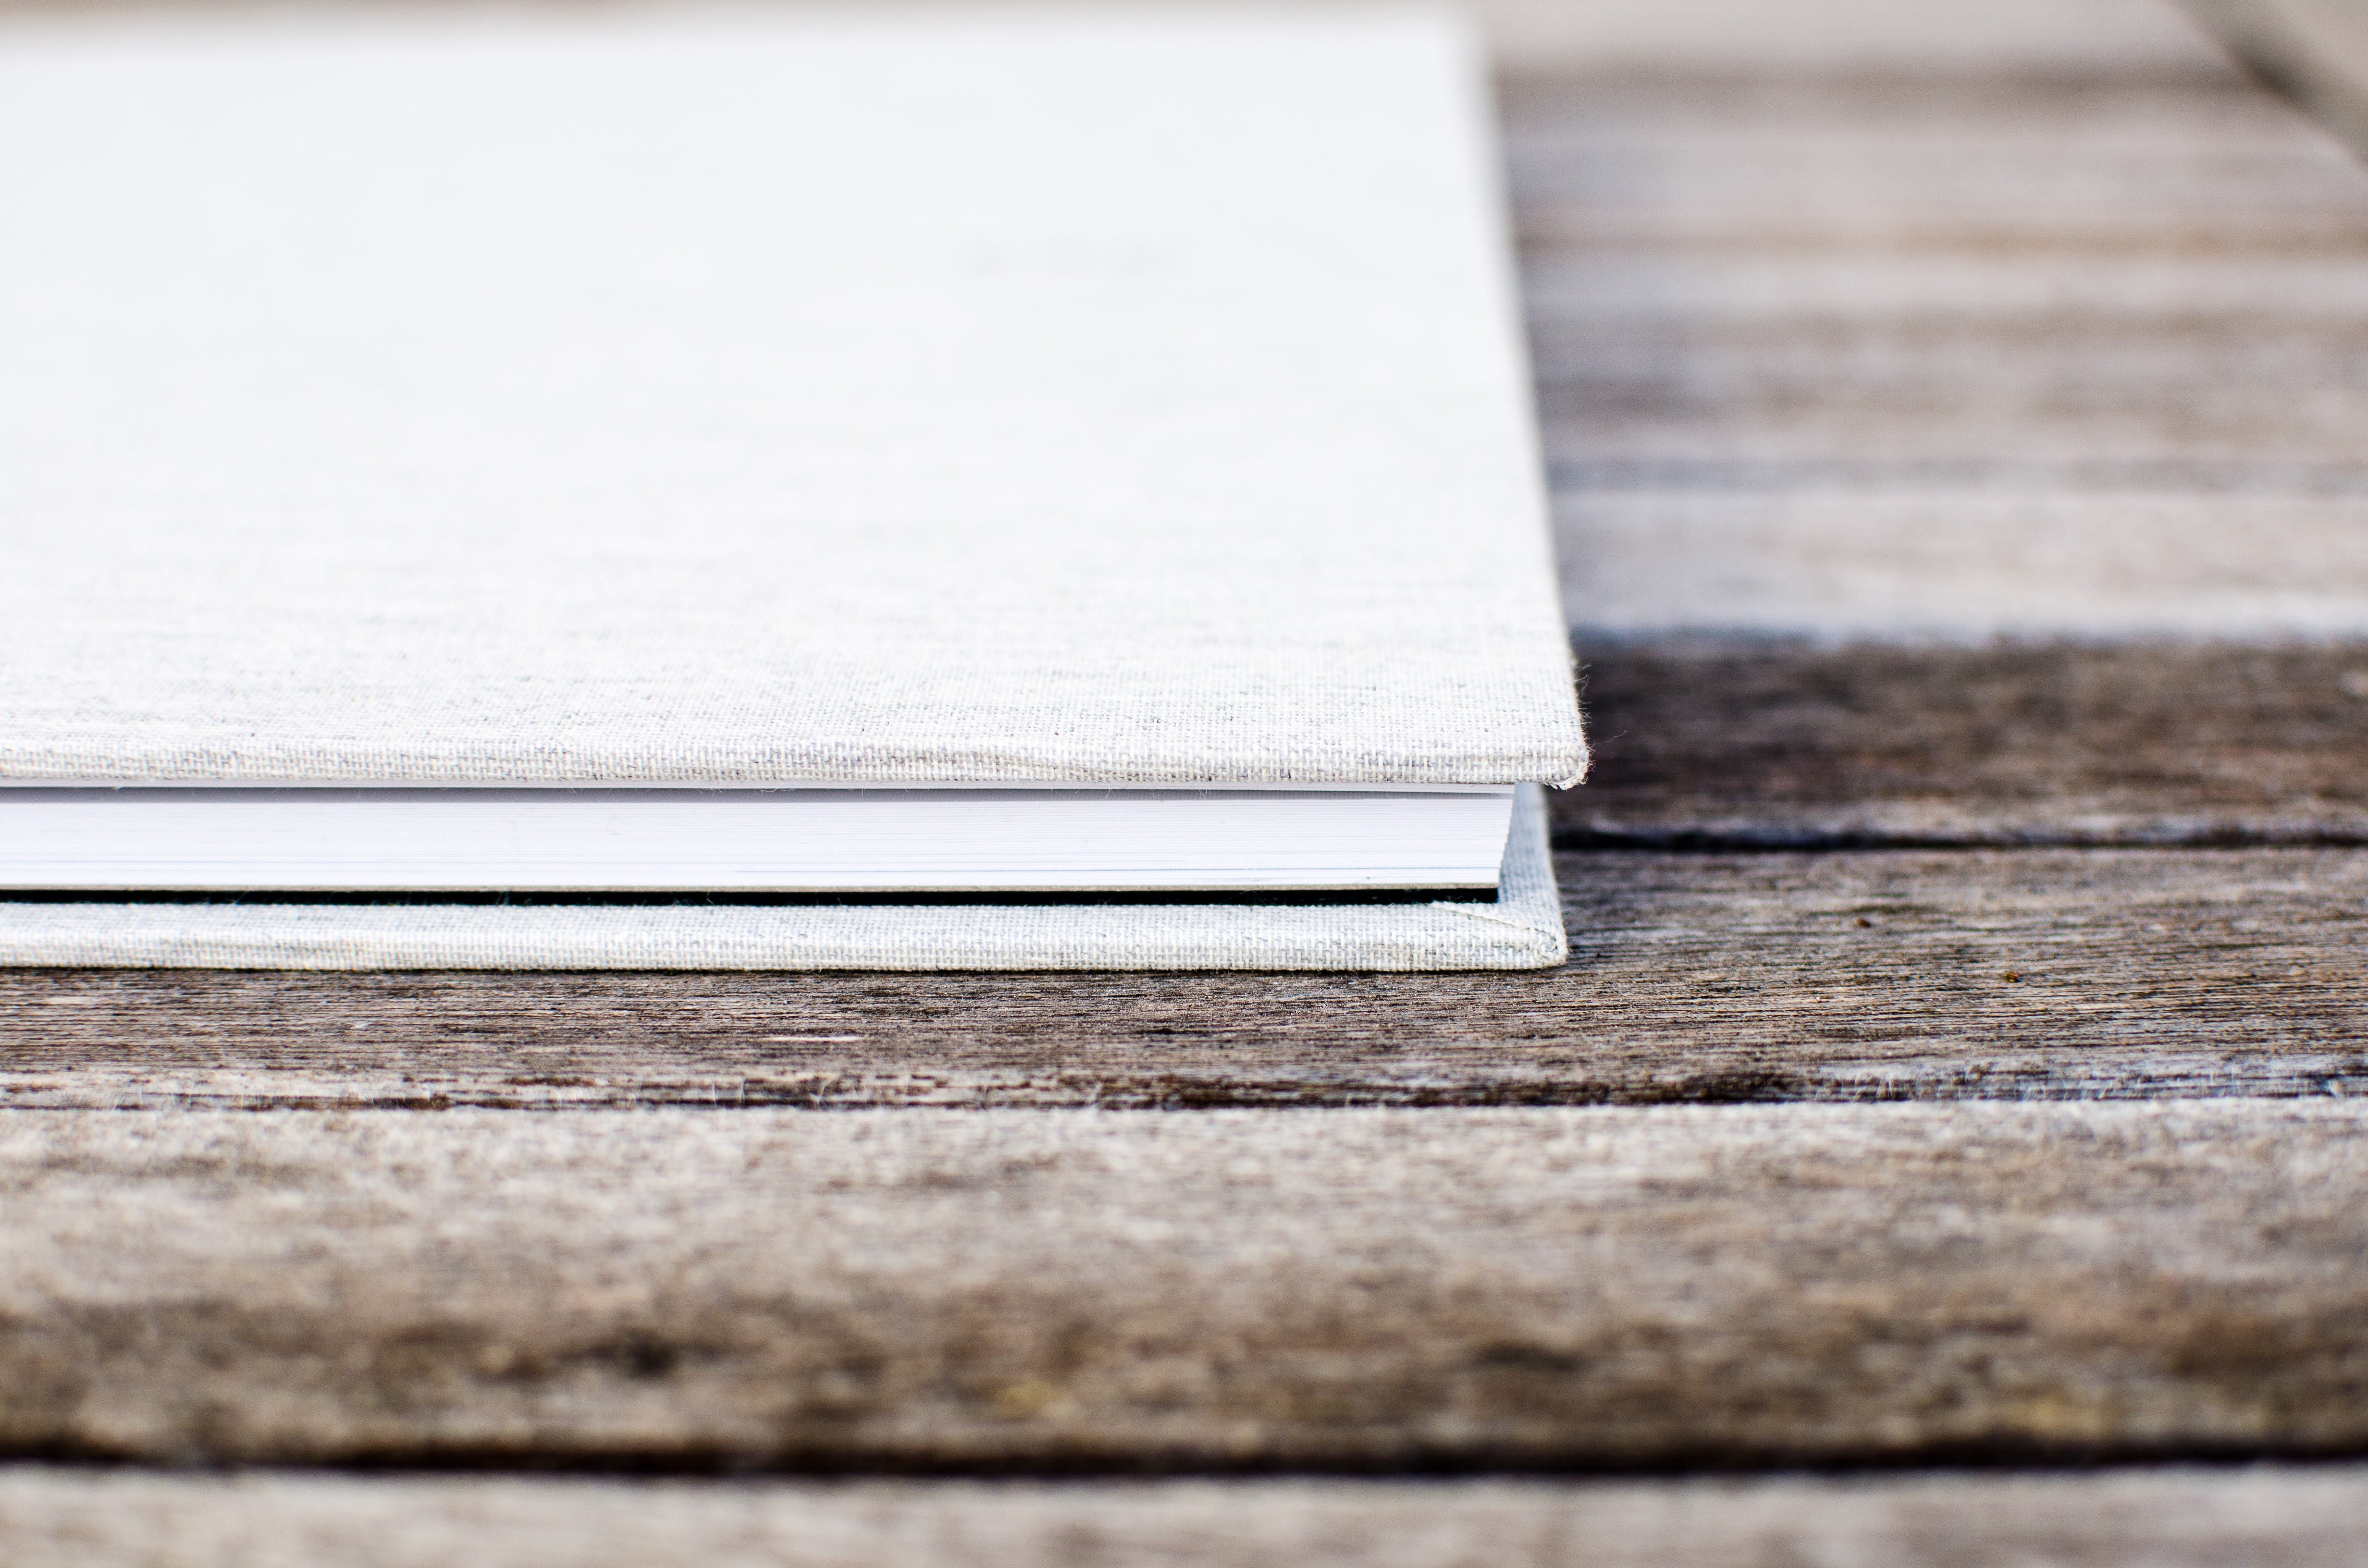 White hardcover book sitting on the wooden table